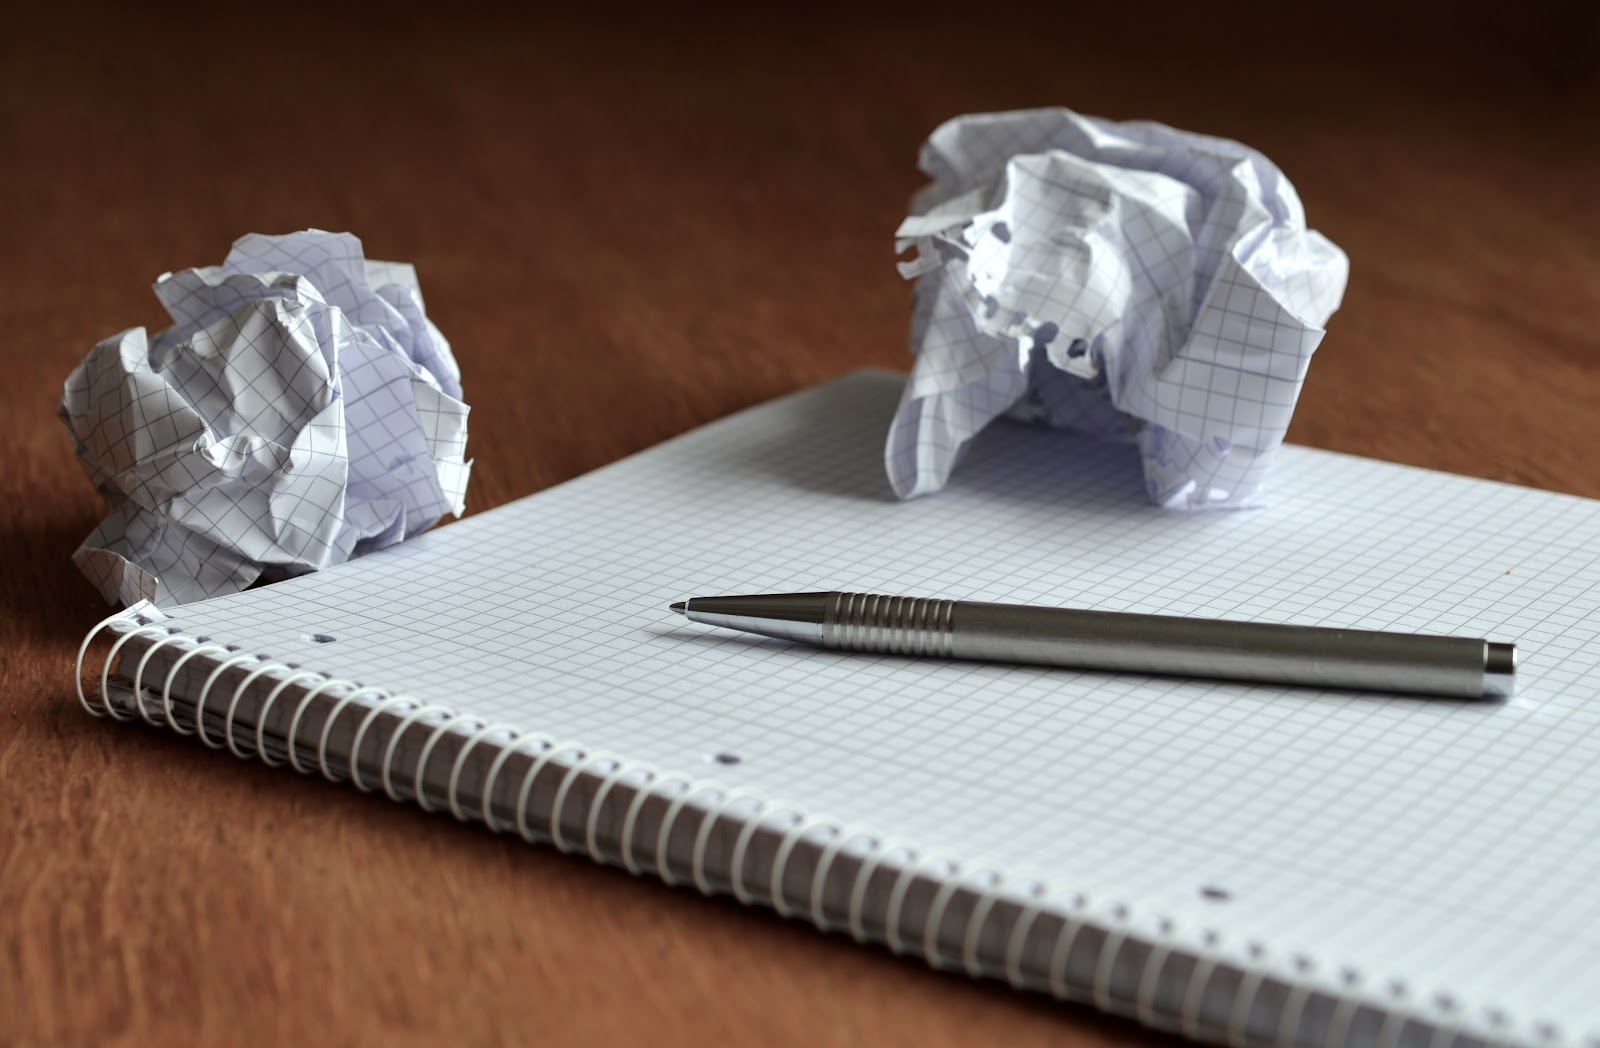 Trashed demonstrative speech ideas. Crumpled pieces of paper on a blank notebook.